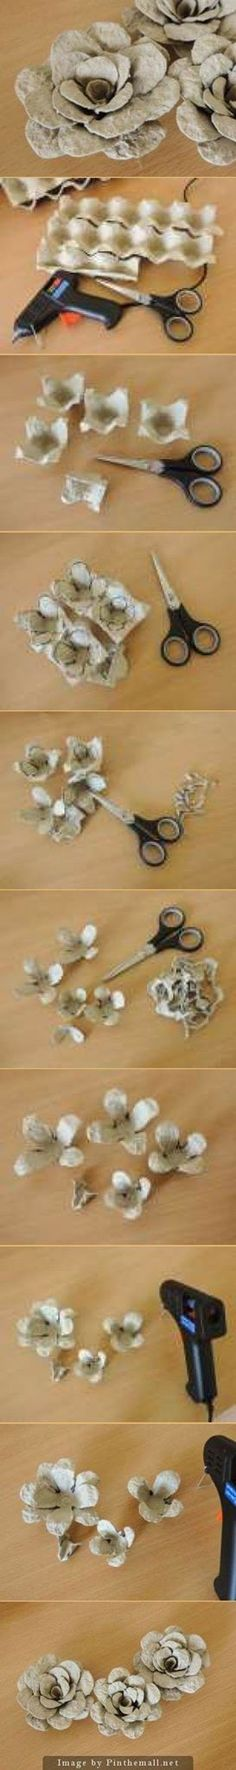 The whole detailed photo tutorial on how to make these egg carton flowers - Tuto. - - The whole detailed photo tutorial on how to make these egg carton flowers – Tutorial foto: trandafiri din cofraje de ouă Handmade Flowers, Diy Flowers, Fabric Flowers, Paper Flowers, Hobbies And Crafts, Diy And Crafts, Crafts For Kids, Diy Paper, Paper Art